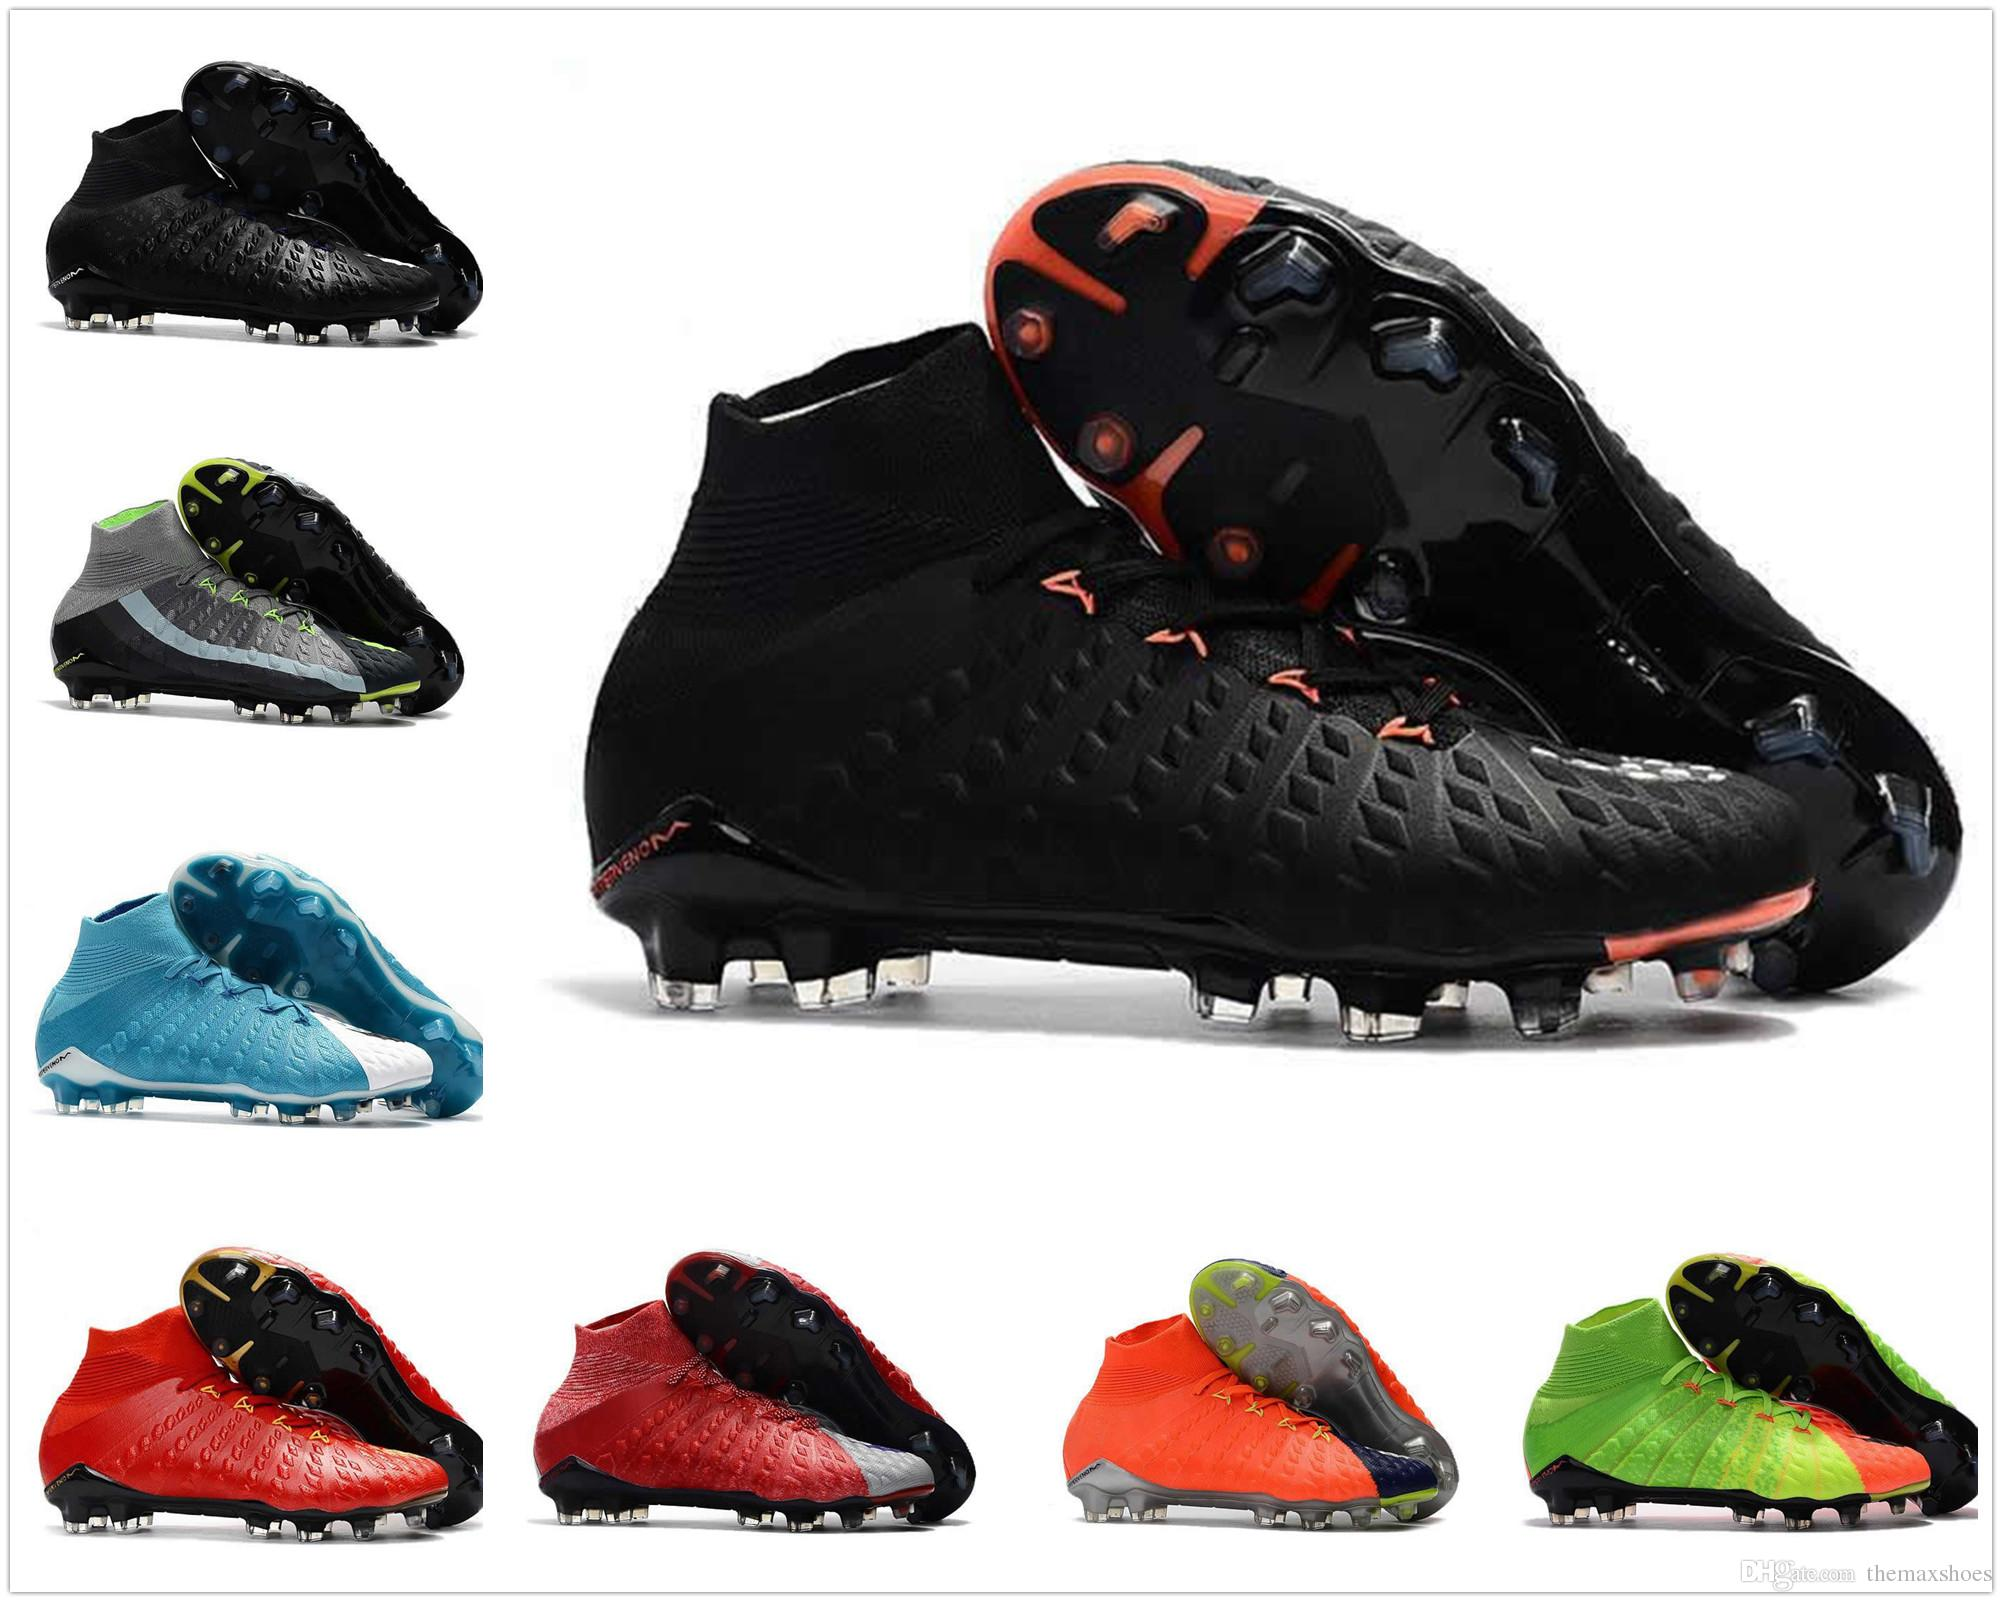 clearance real buy cheap best store to get 2018 Free Shipping Hypervenom Phantom III DF Soccer Shoes Men Football shoes Mens High ankle FG Soccer Cleats Neymar FG Football Boots free shipping shopping online free shipping footaction nql8RhKp